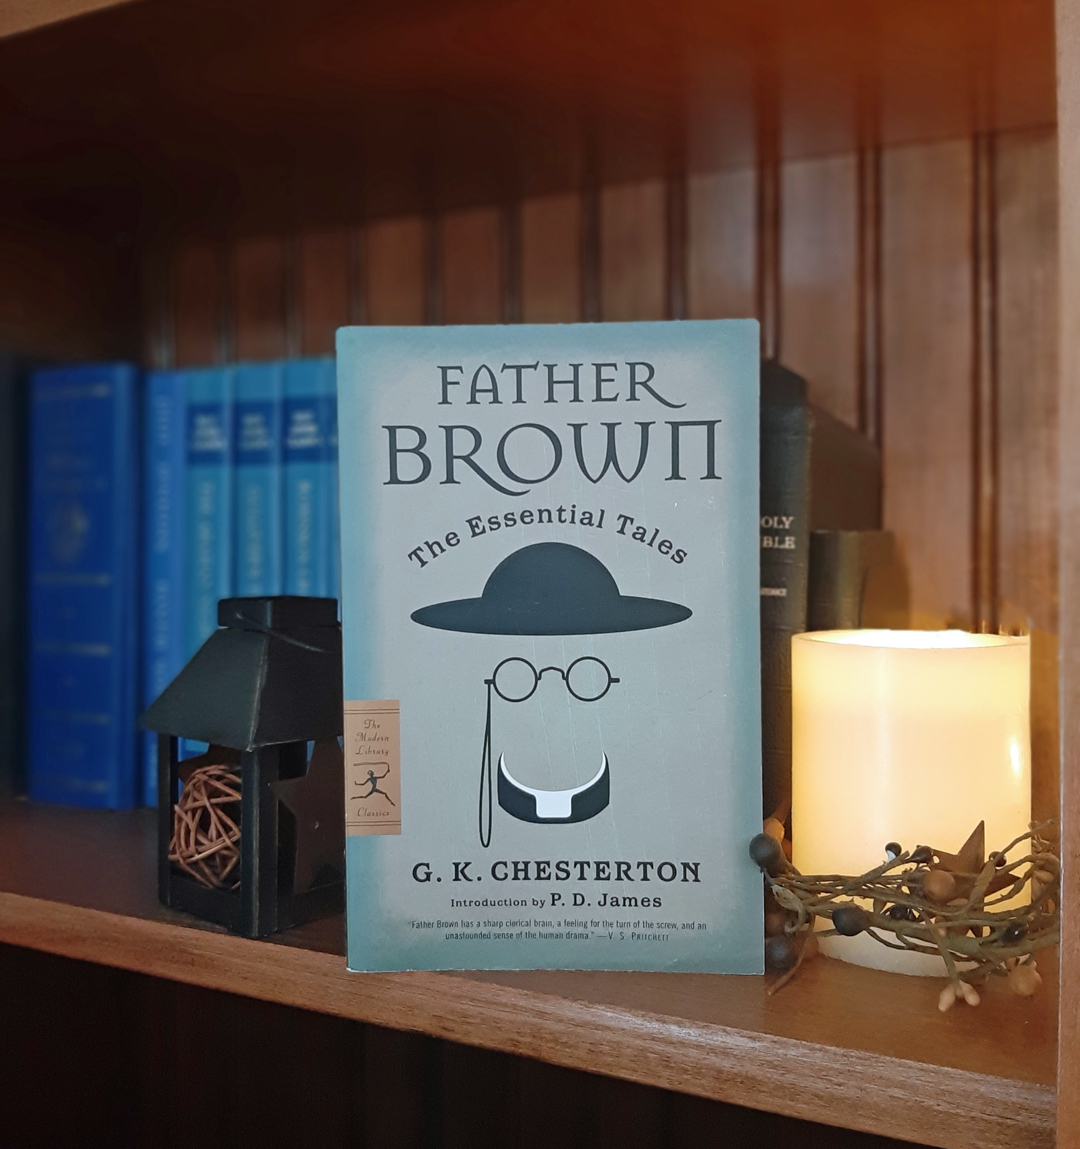 G.K. Chesterton – Father Brown: The Essential Tales